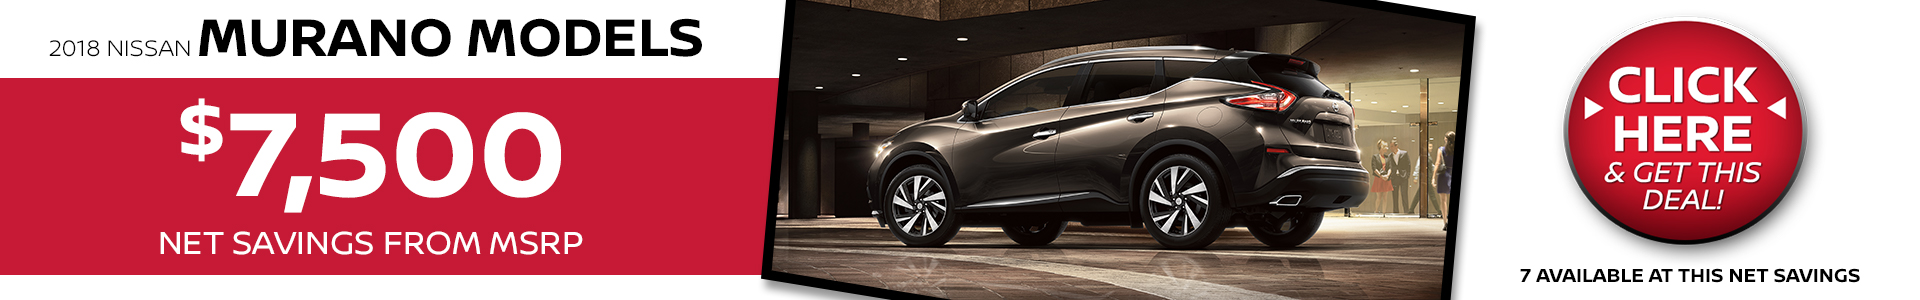 Mossy Nissan - Nissan Murano $7,500 Off MSRP